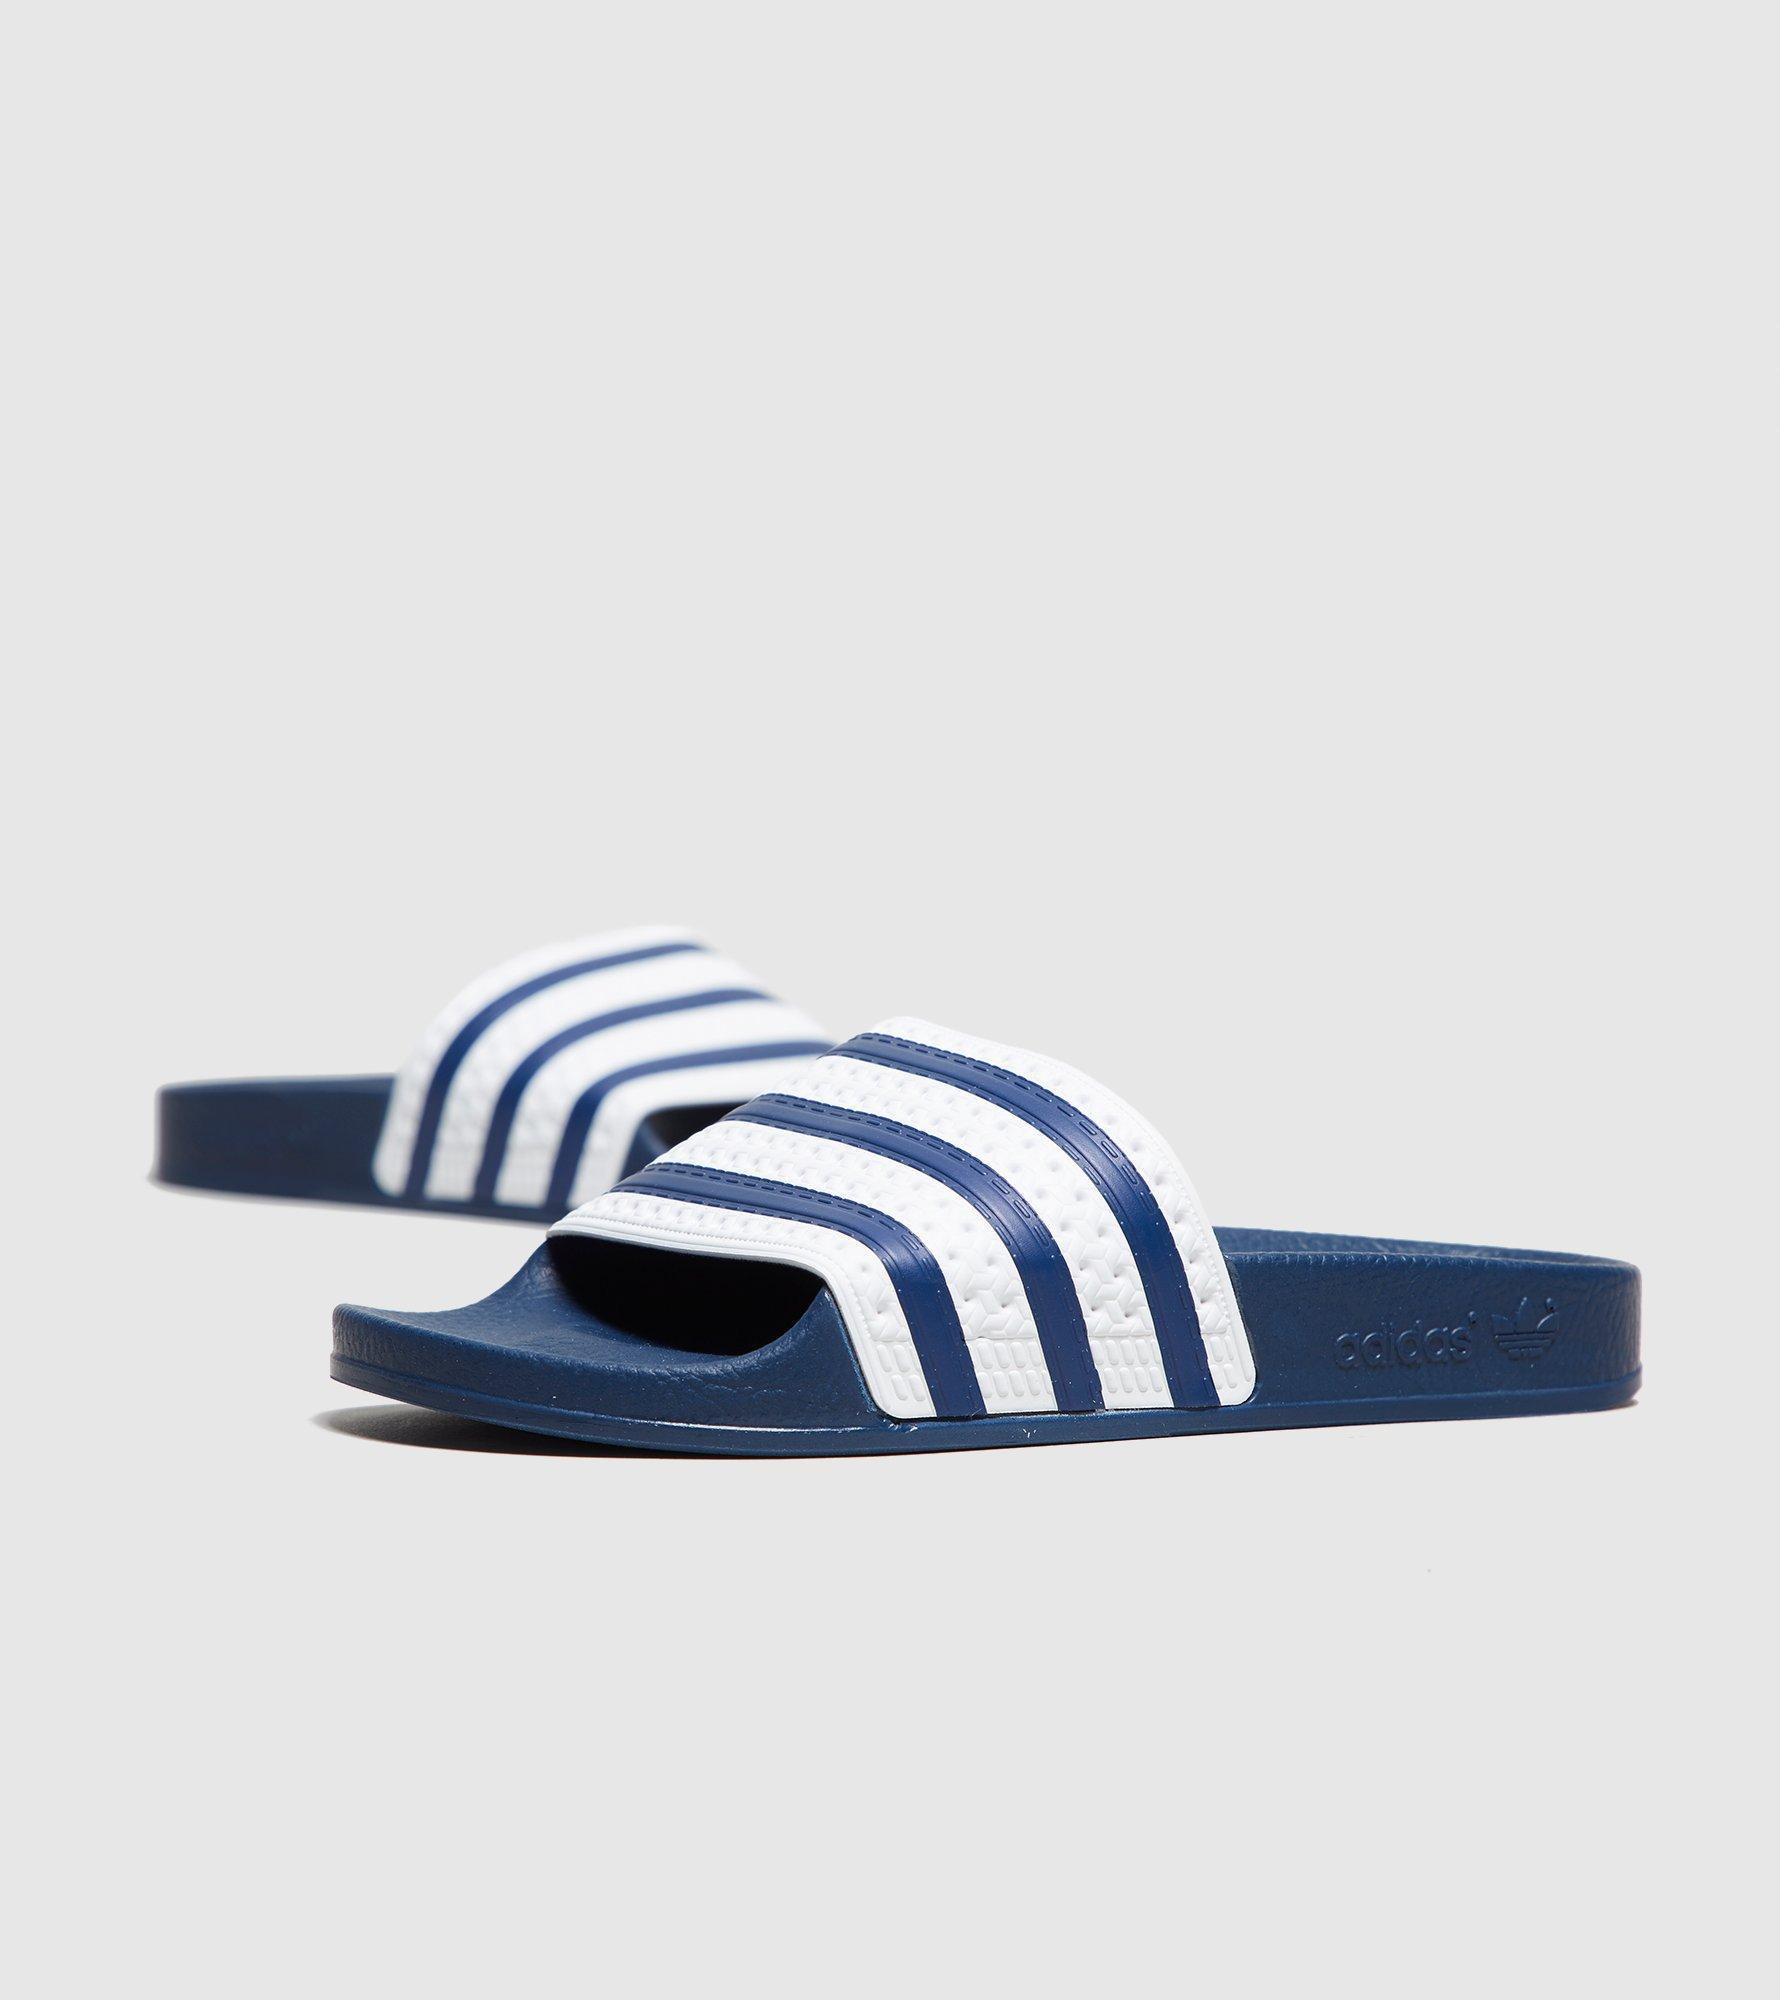 99bfce316f9e Lyst - adidas Originals Adilette Slides Women s in Blue for Men